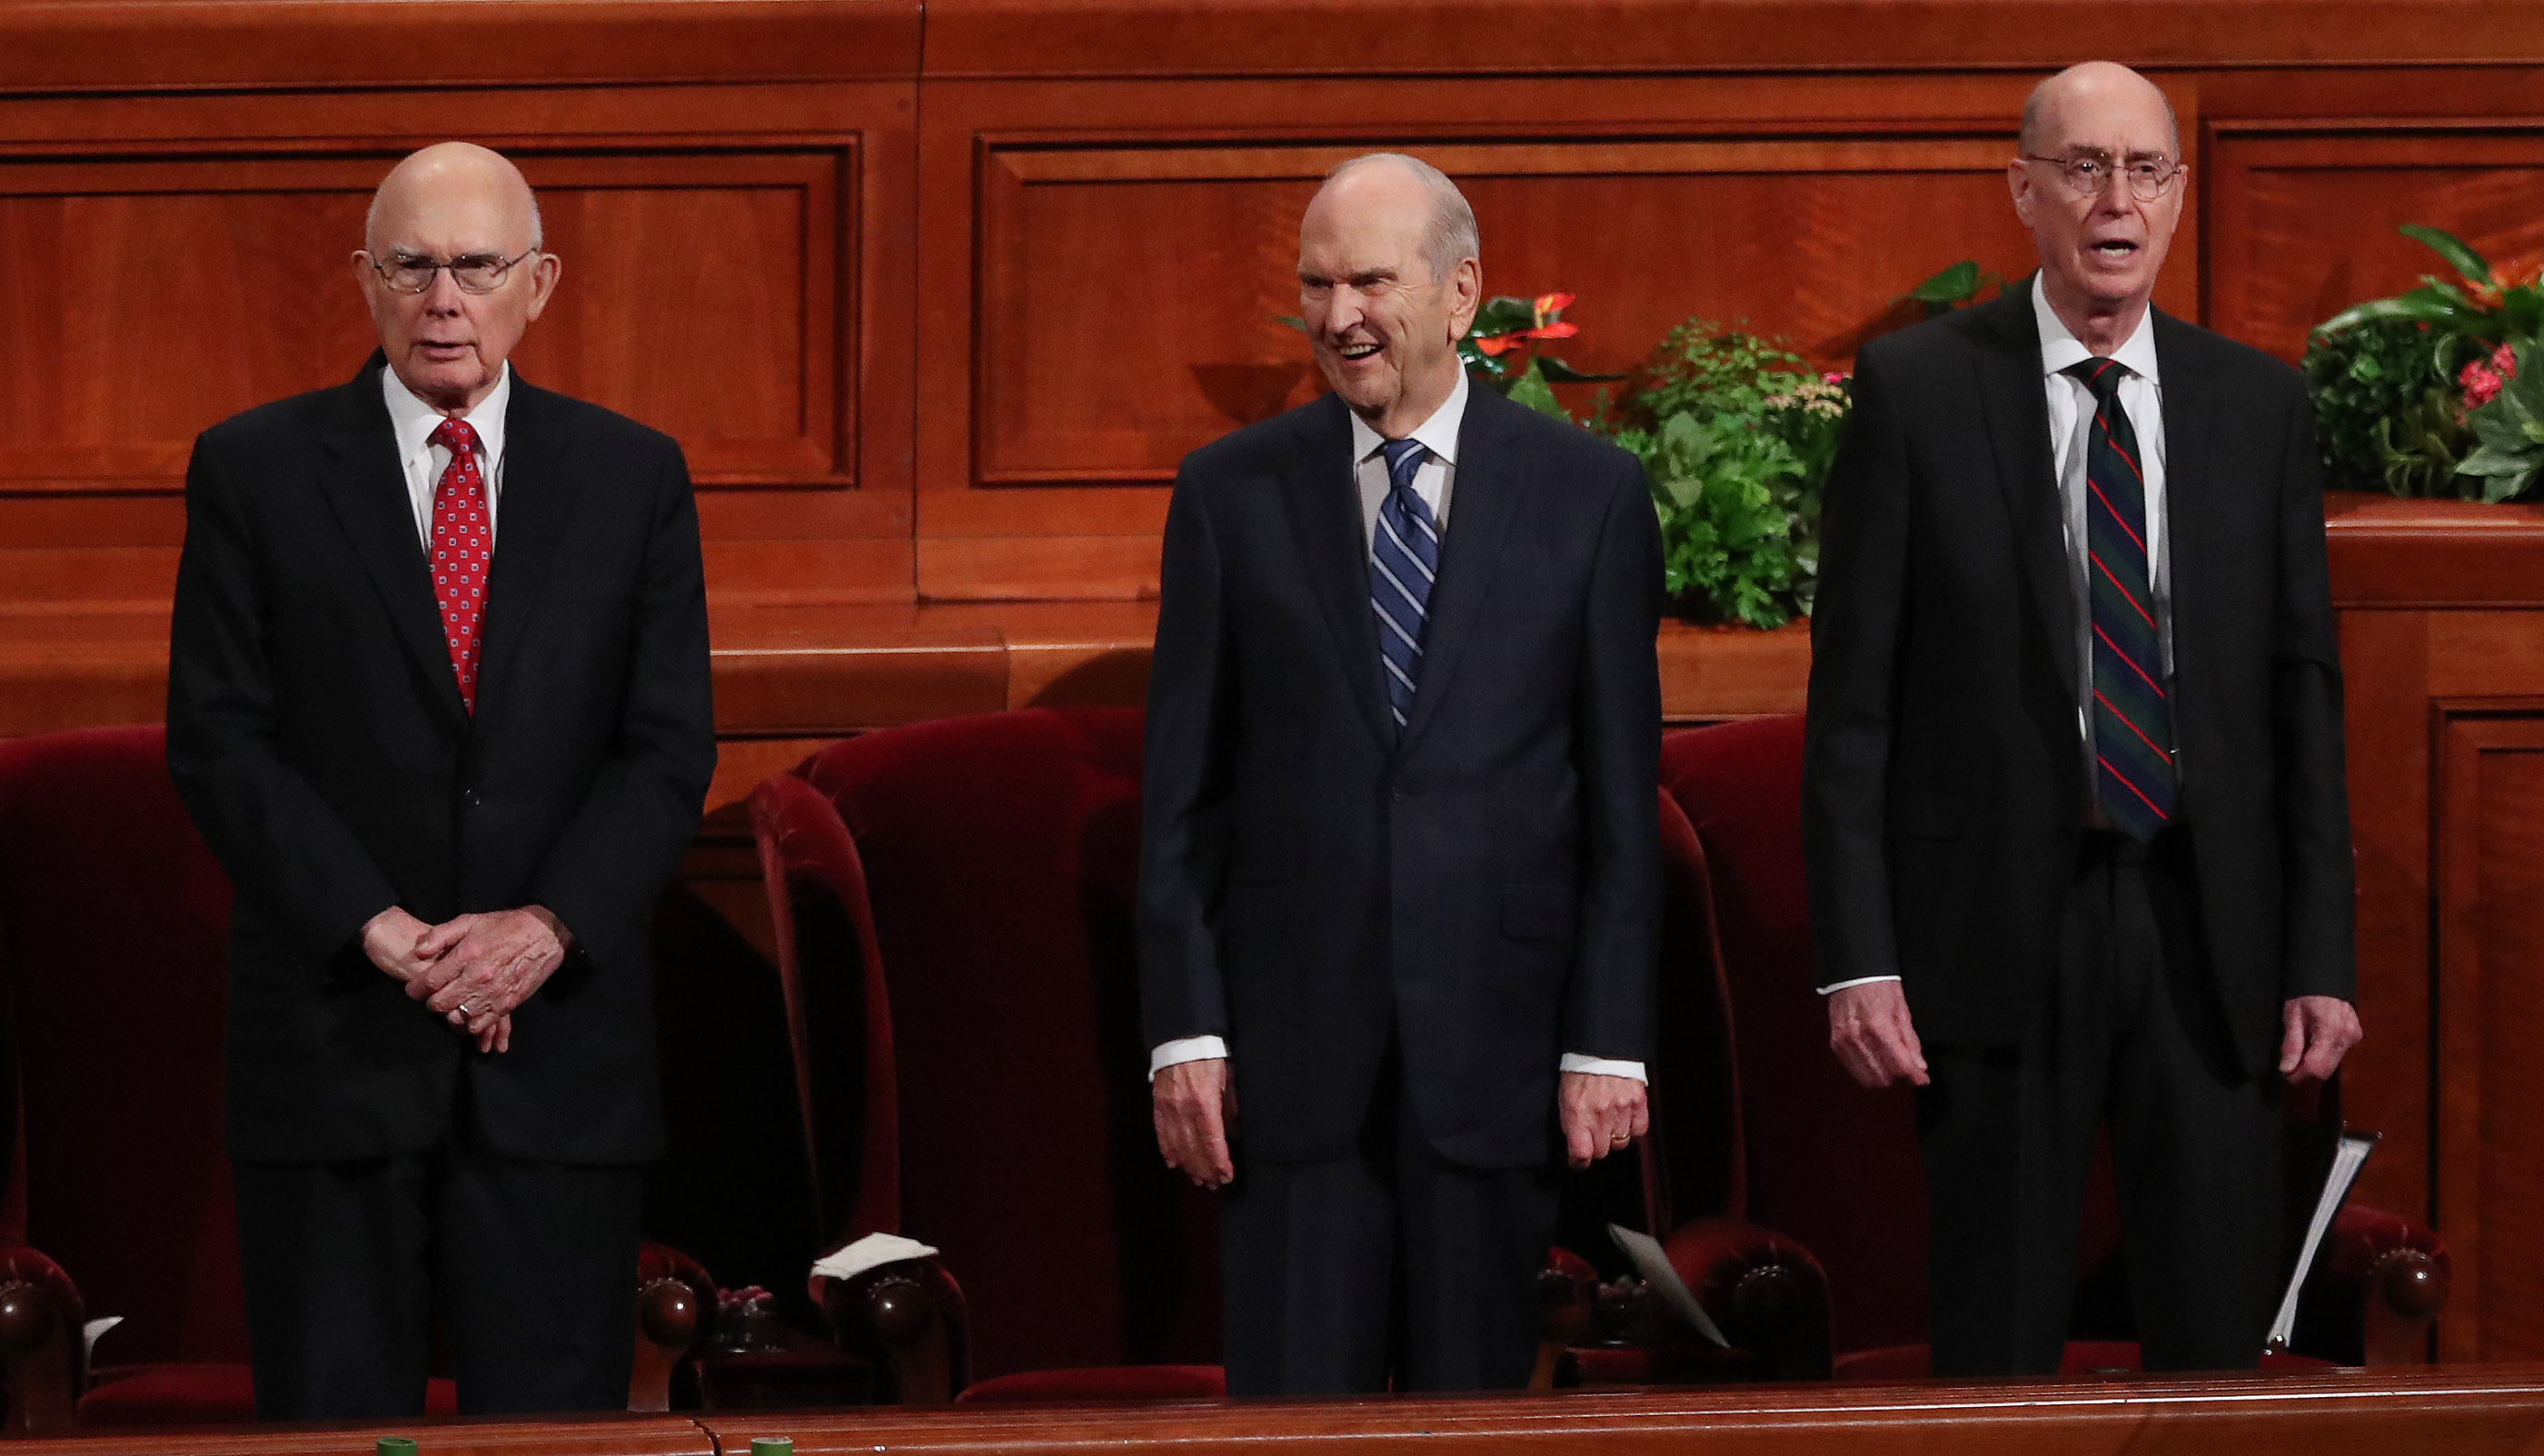 President Russell M. Nelson of The Church of Jesus Christ of Latter-day Saints, center, and his counselors, President Dallin H. Oaks, first counselor in the First Presidency, left, and President Henry B. Eyring, second counselor in the First Presidency, right, sing a congregational hymn during the 188th Semiannual General Conference of The Church of Jesus Christ of Latter-day Saints in Salt Lake City on Sunday, Oct. 7, 2018.